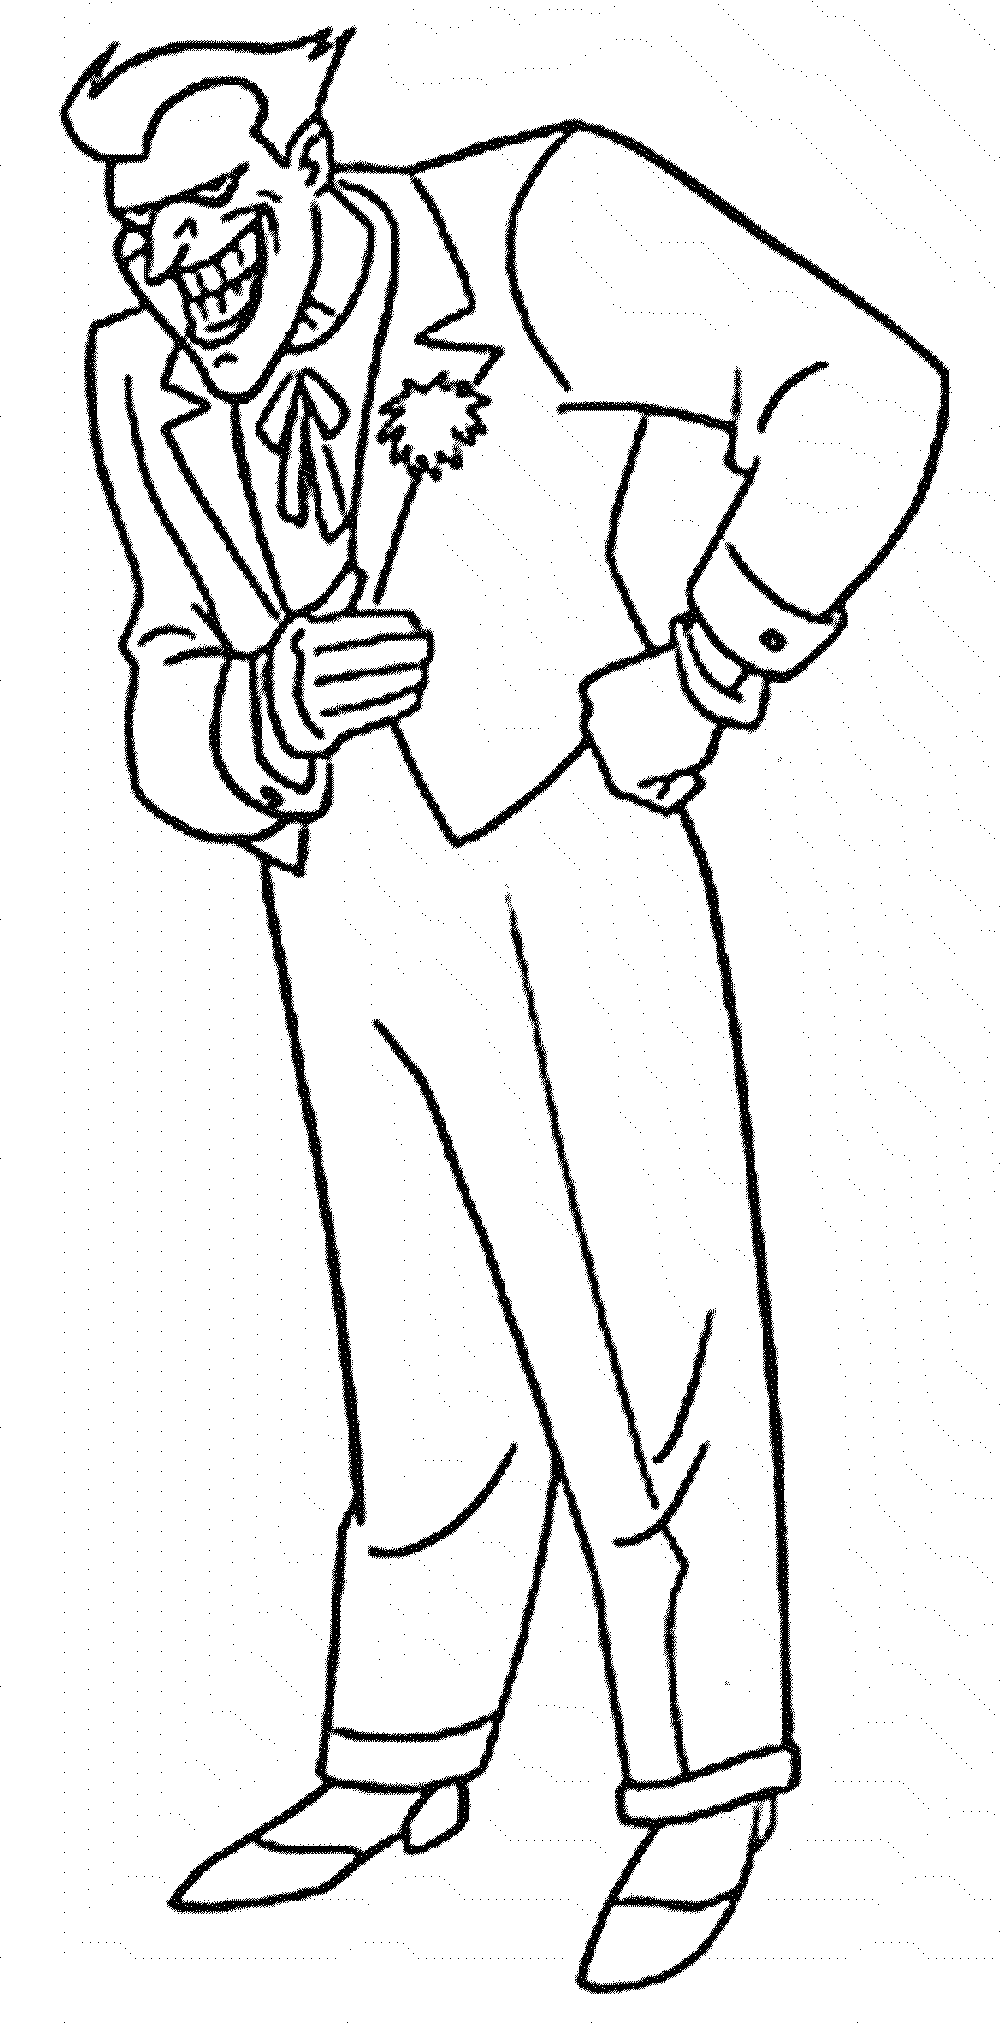 1000x2023 Joker Coloring Pages To Download And Print For Free